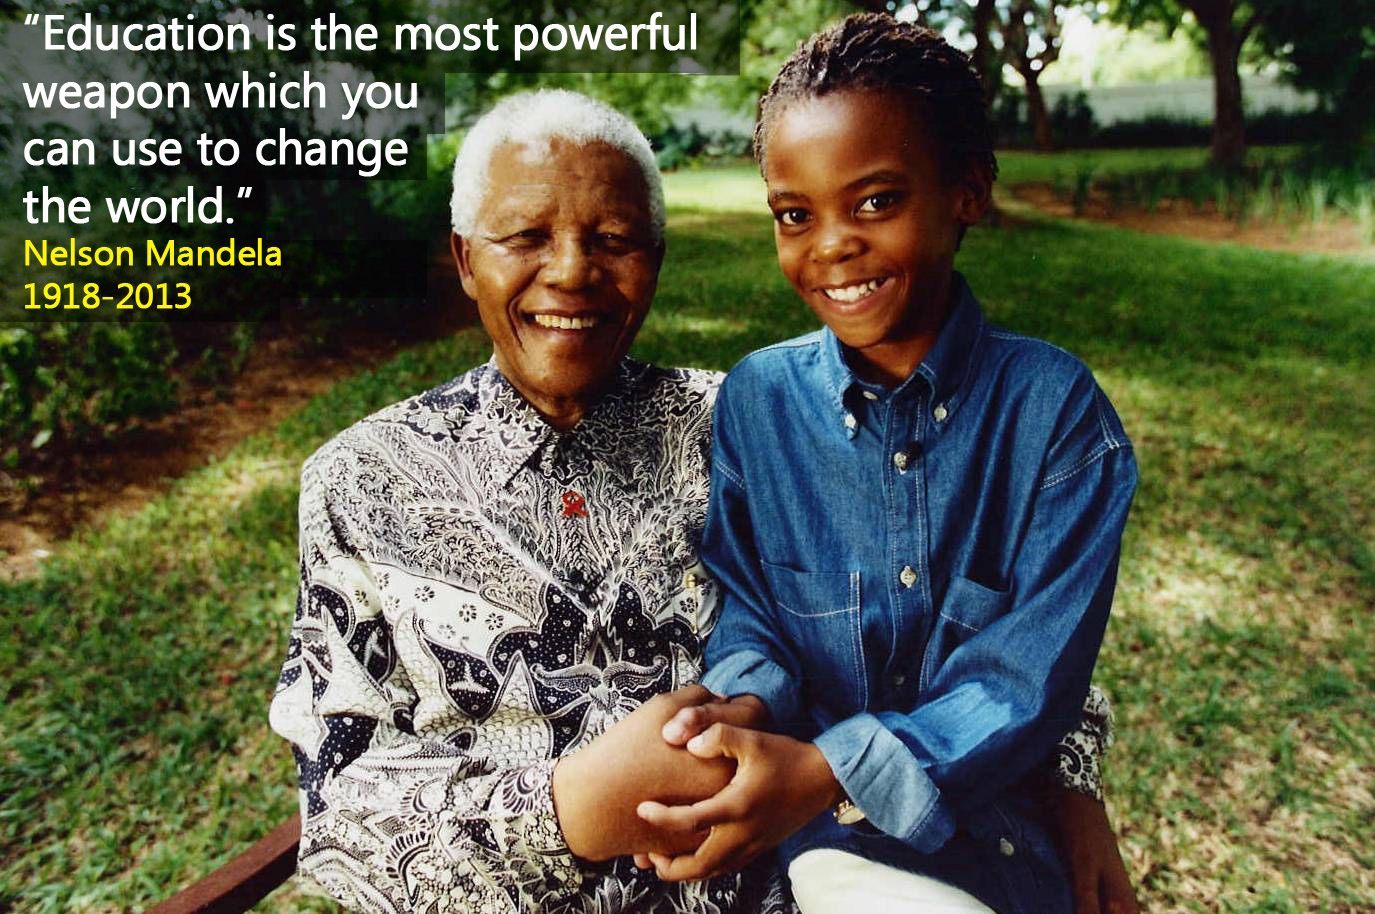 """The world has lost a true hero today, a champion for children everywhere. UNICEF joins millions of people around the world mourning the loss of Nelson #Mandela, former President of South Africa.   One of our favorite phrases from #NelsonMandela - """"Education is the most powerful weapon which you can use to change the world.""""  Read more http://uni.cf/1coJjF1"""